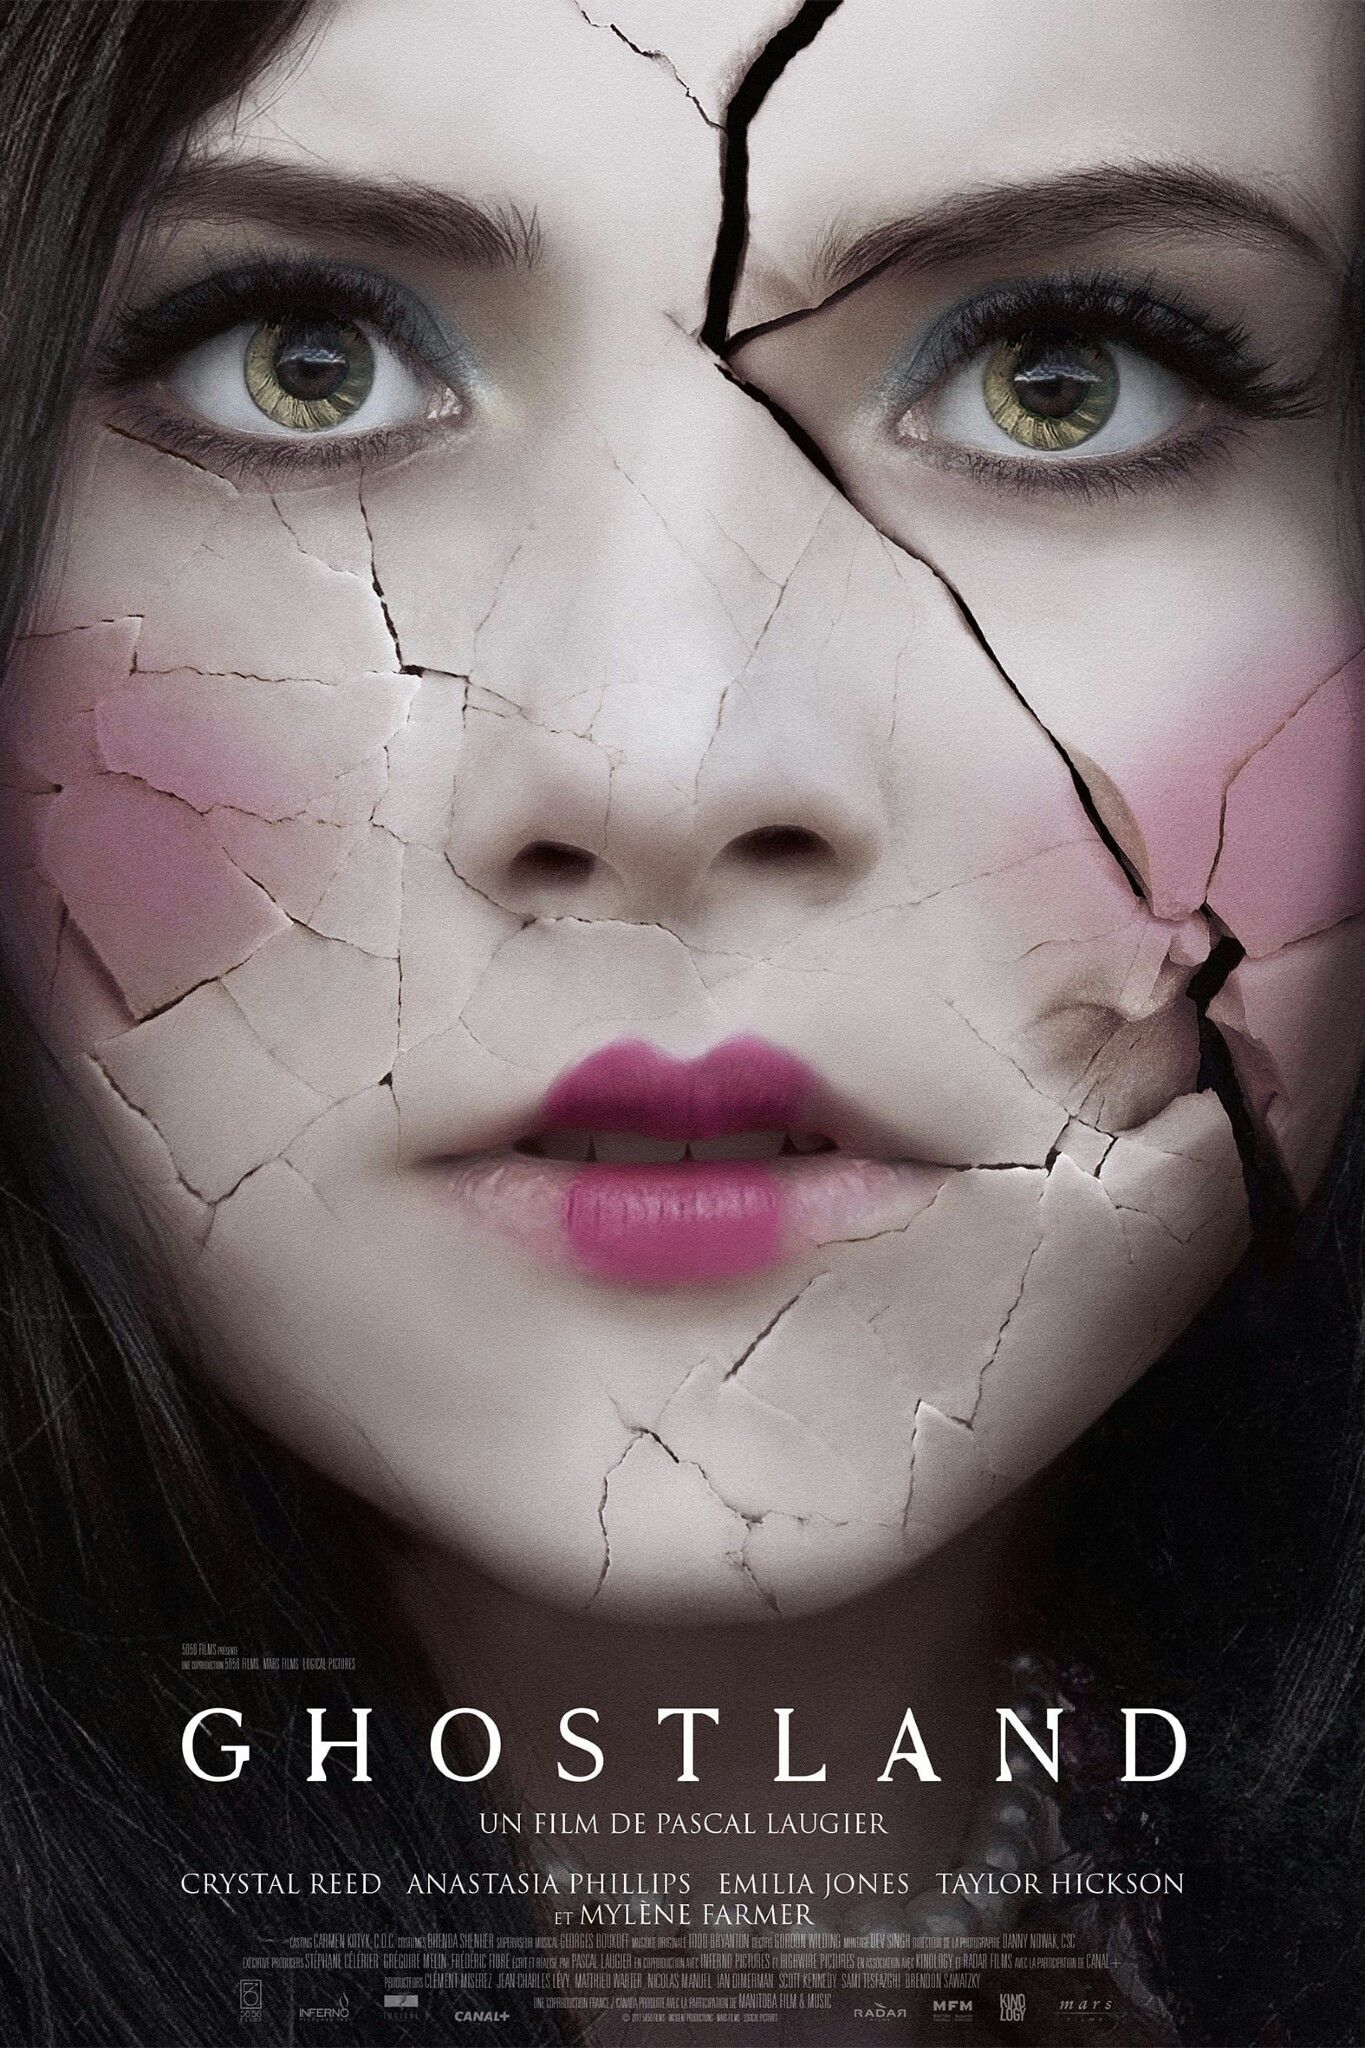 Ghostland Movie Poster Fantastic Movie Posters Scifi Movie Posters Horror Movie Posters Action Movie Poste Full Movies Online Free Movies Online Full Movies